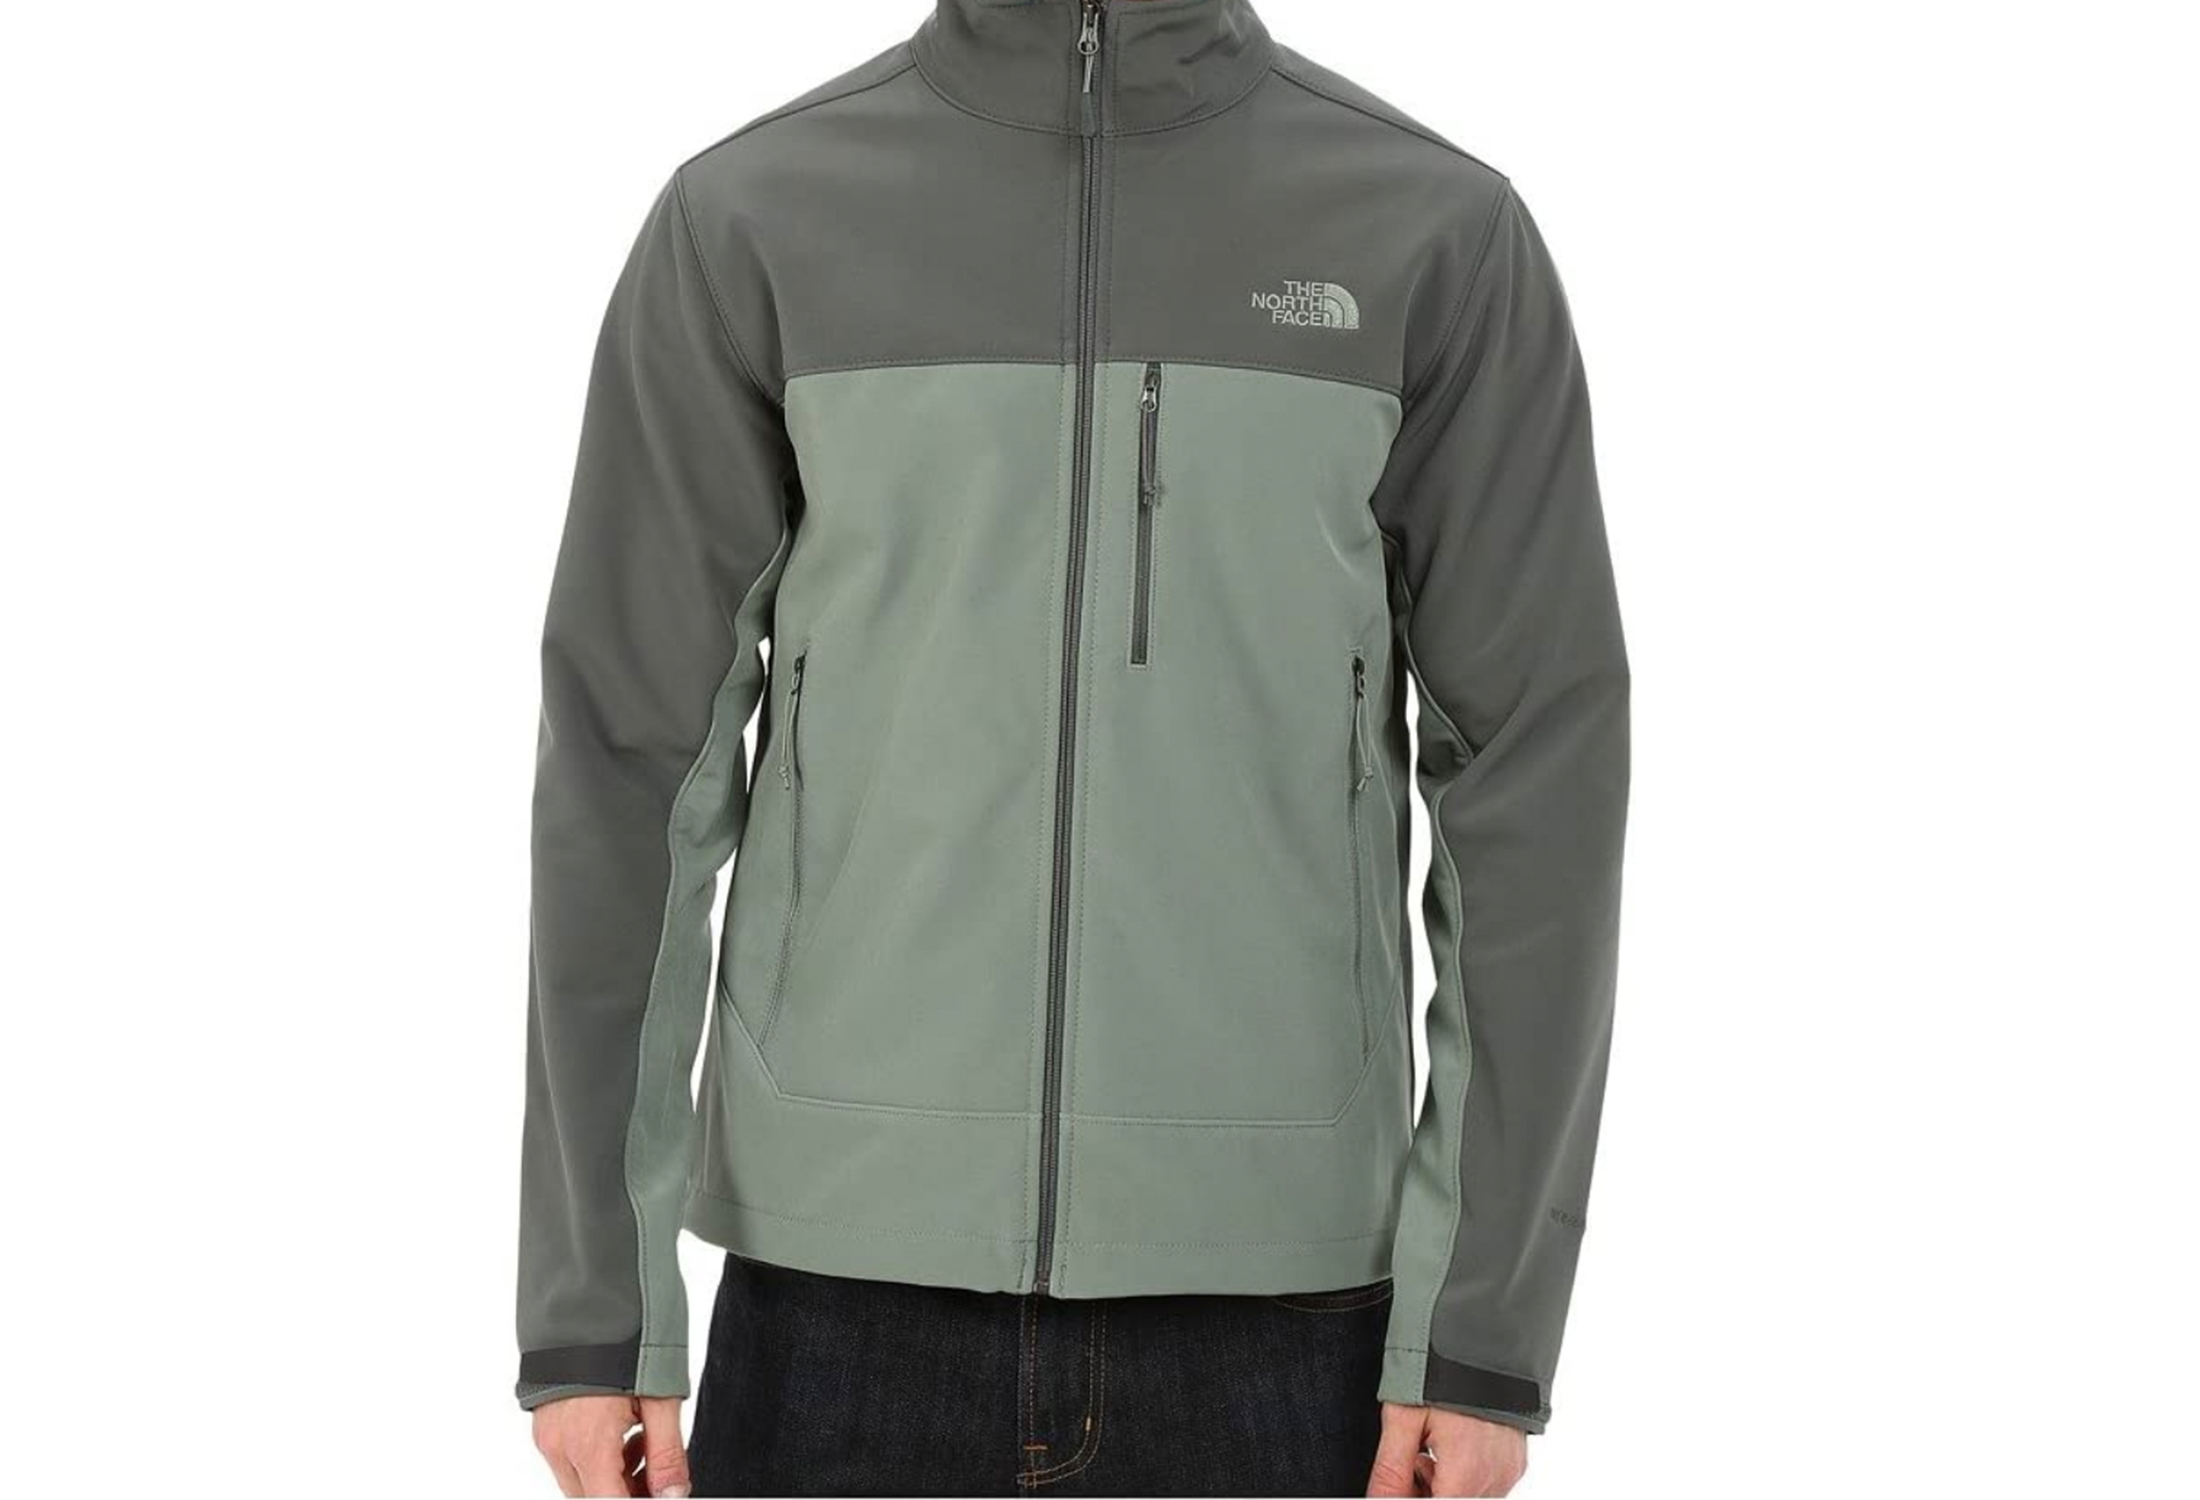 The North Face bionic jkt